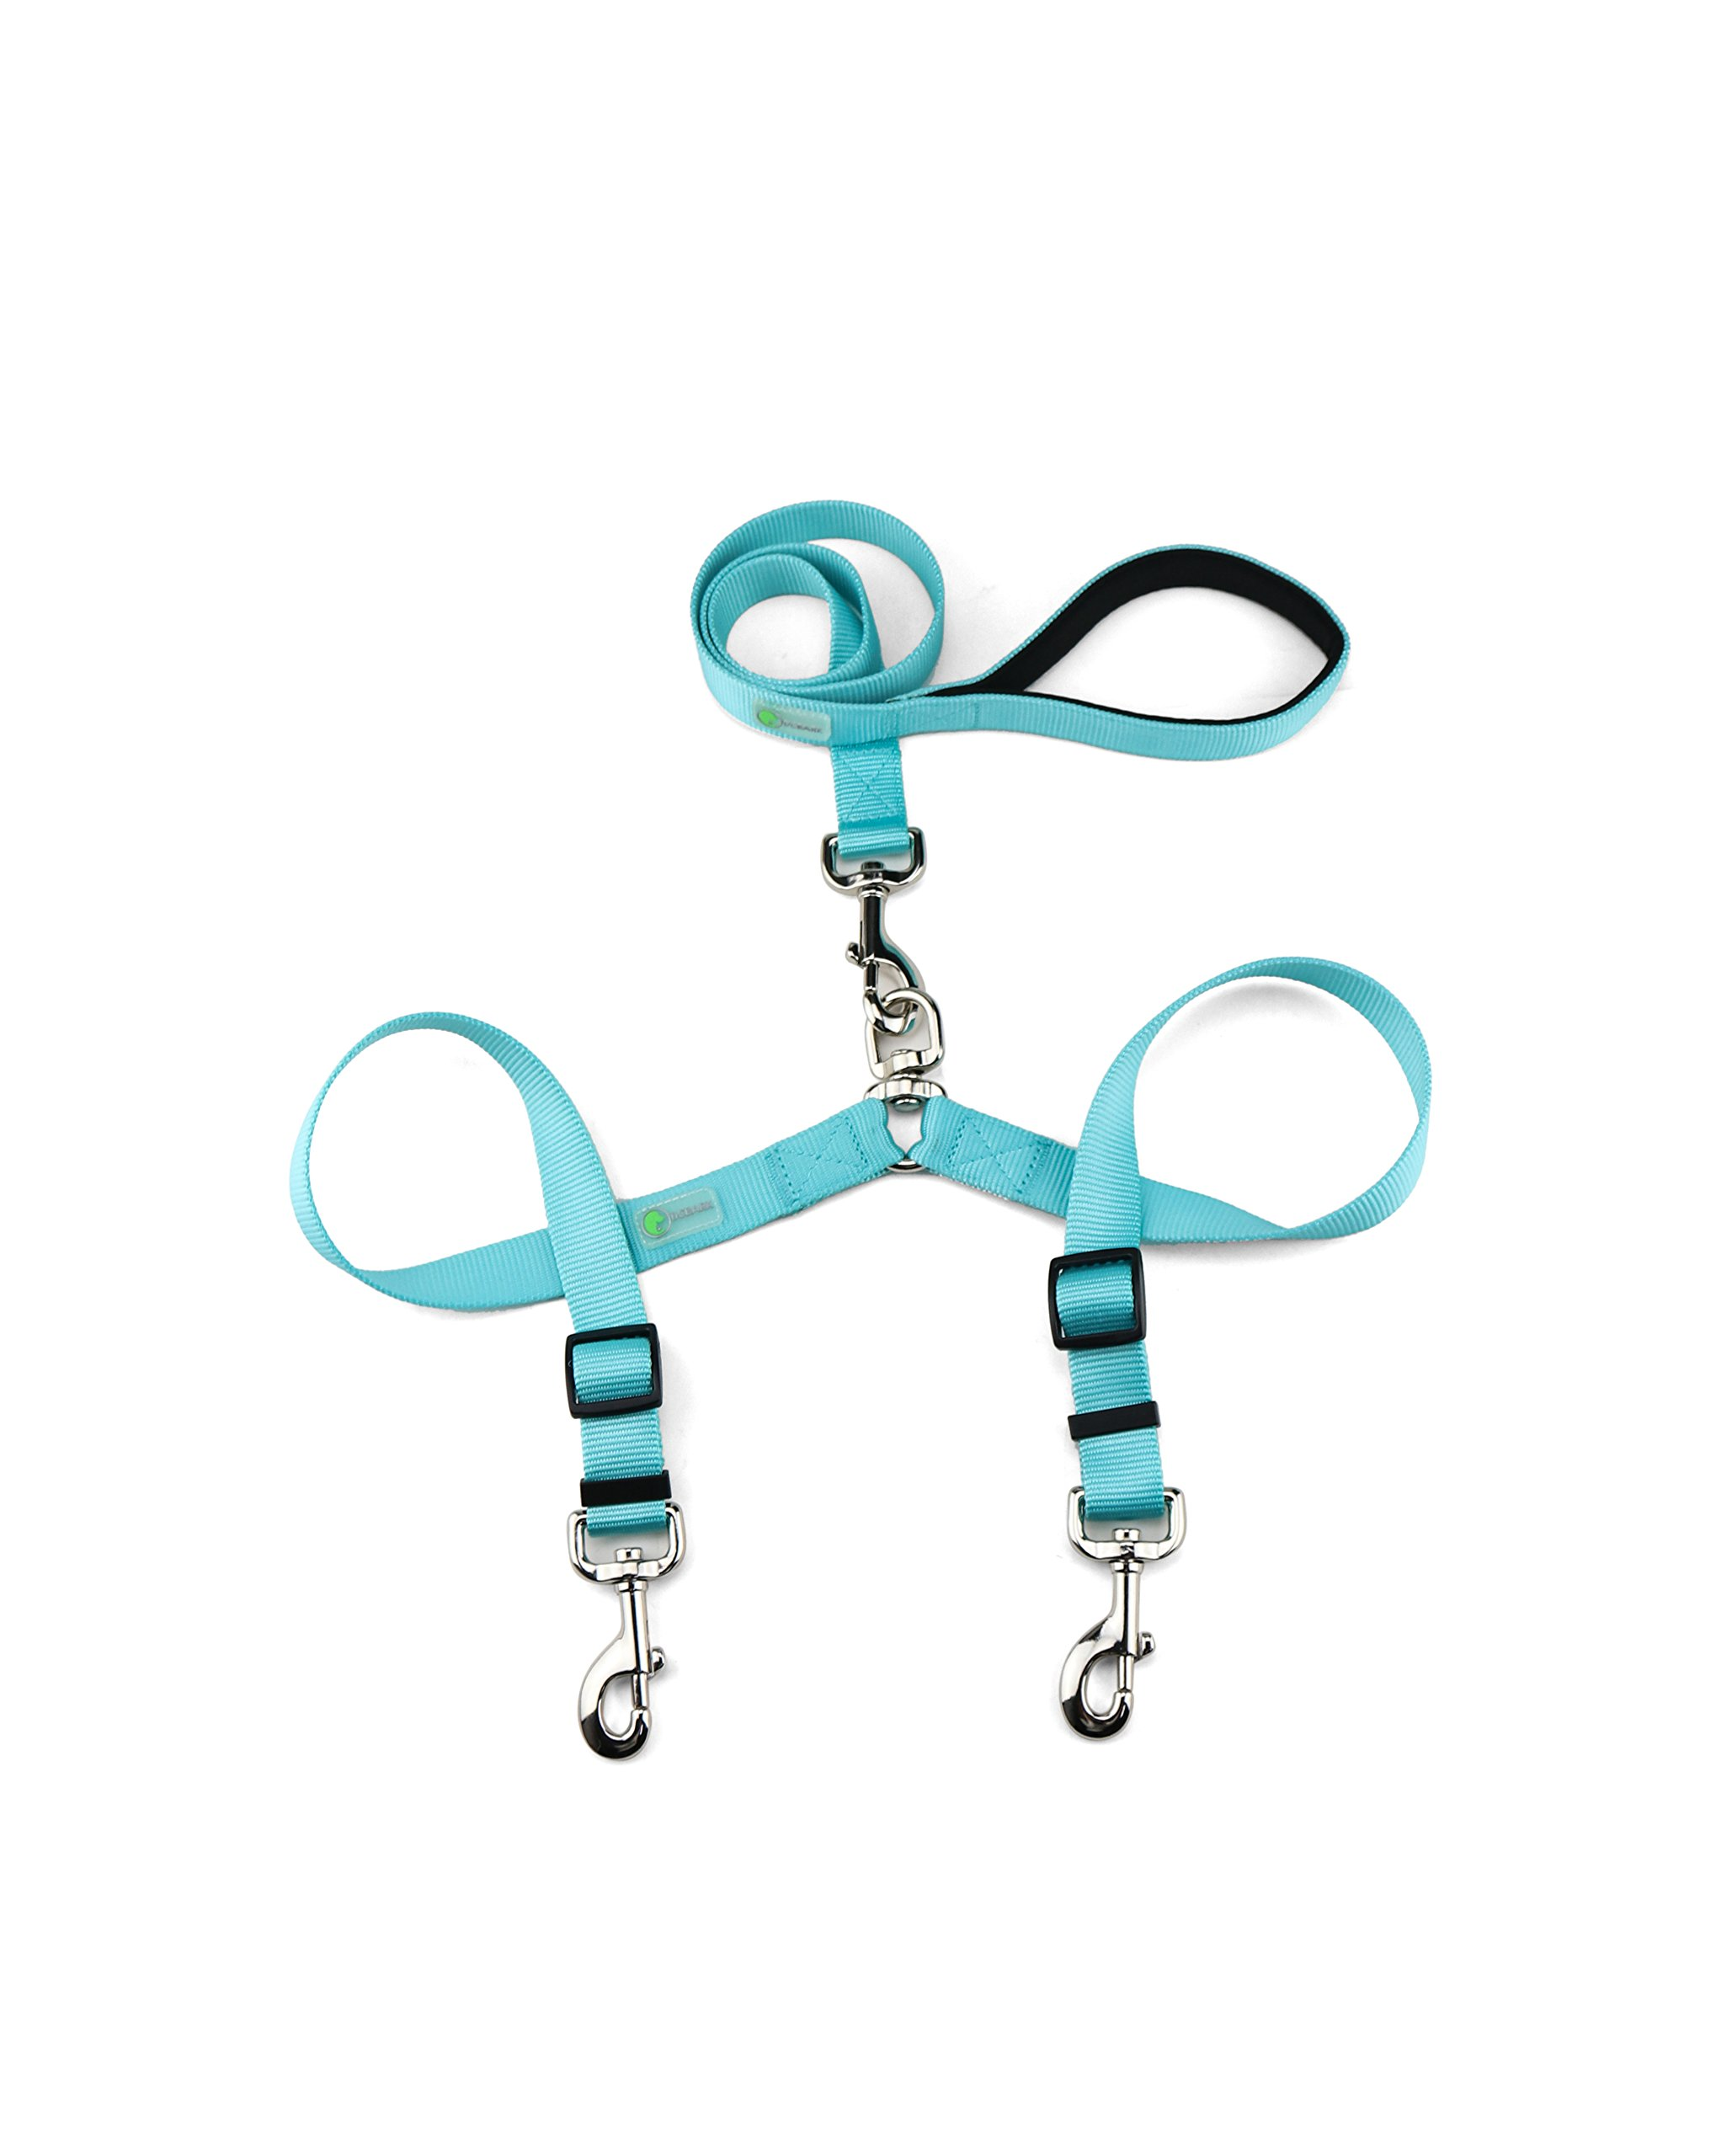 DCBark Double Dog Leash, Premium Quality No-Tangle Leash for 2 Dogs (M, Turquoise)